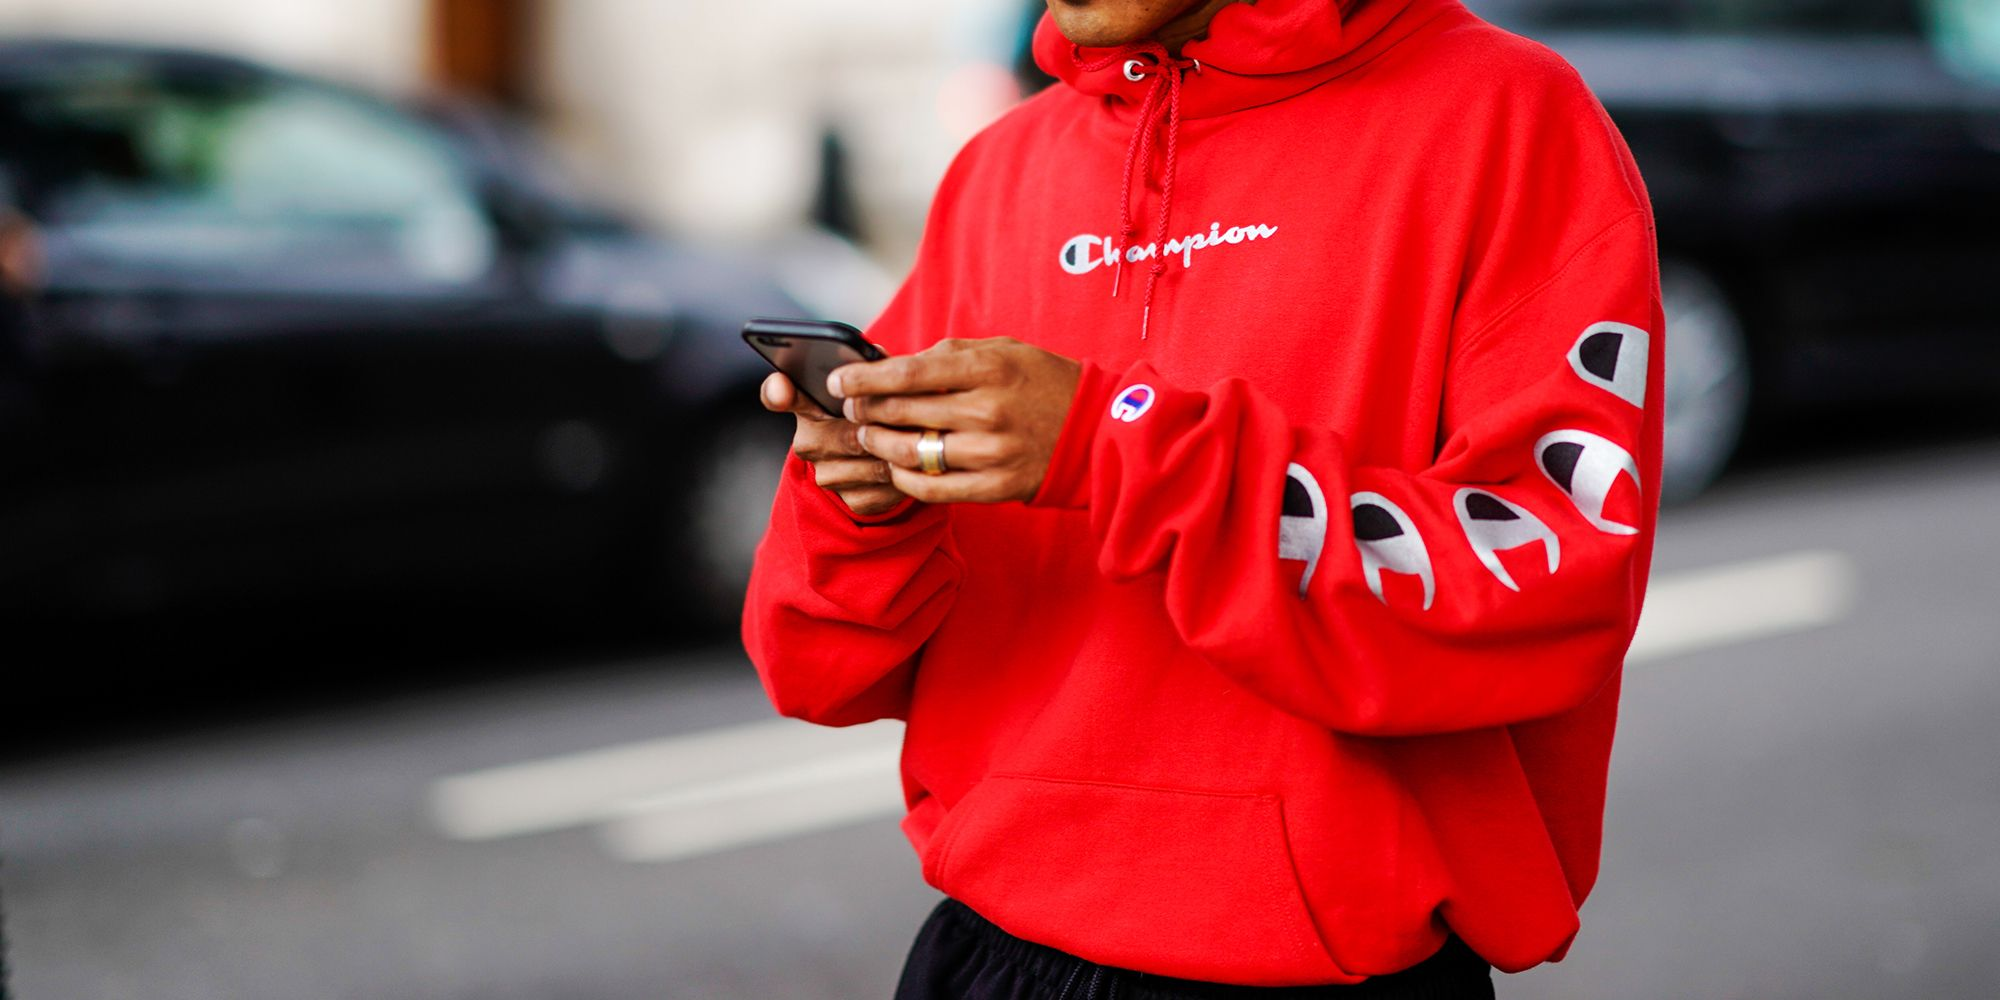 The Best (Actually Stylish) Sweatshirts for Under $60